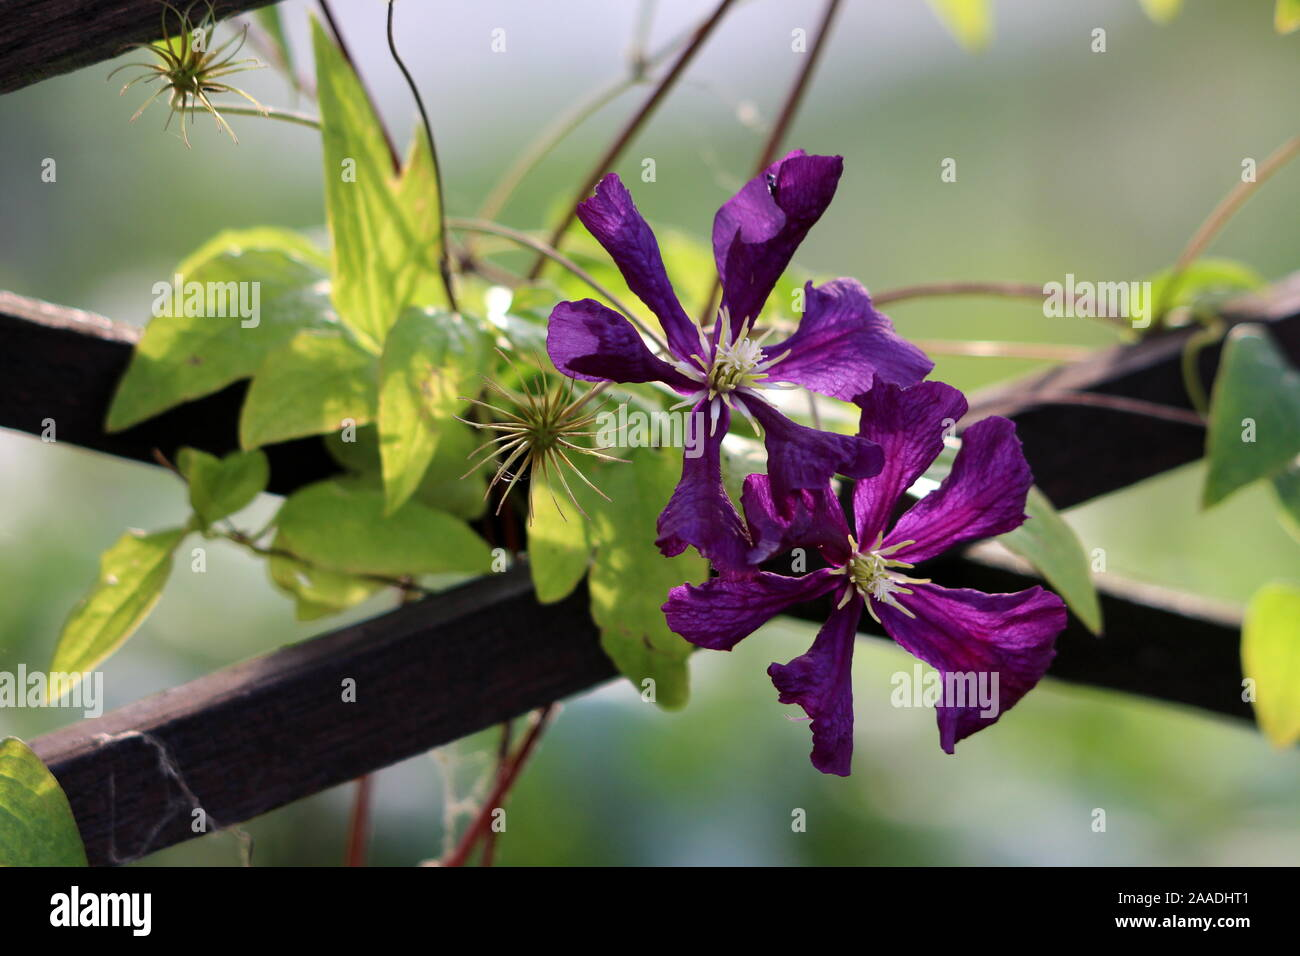 Clematis Or Leather Flower Easy Care Perennial Vine Plants Open